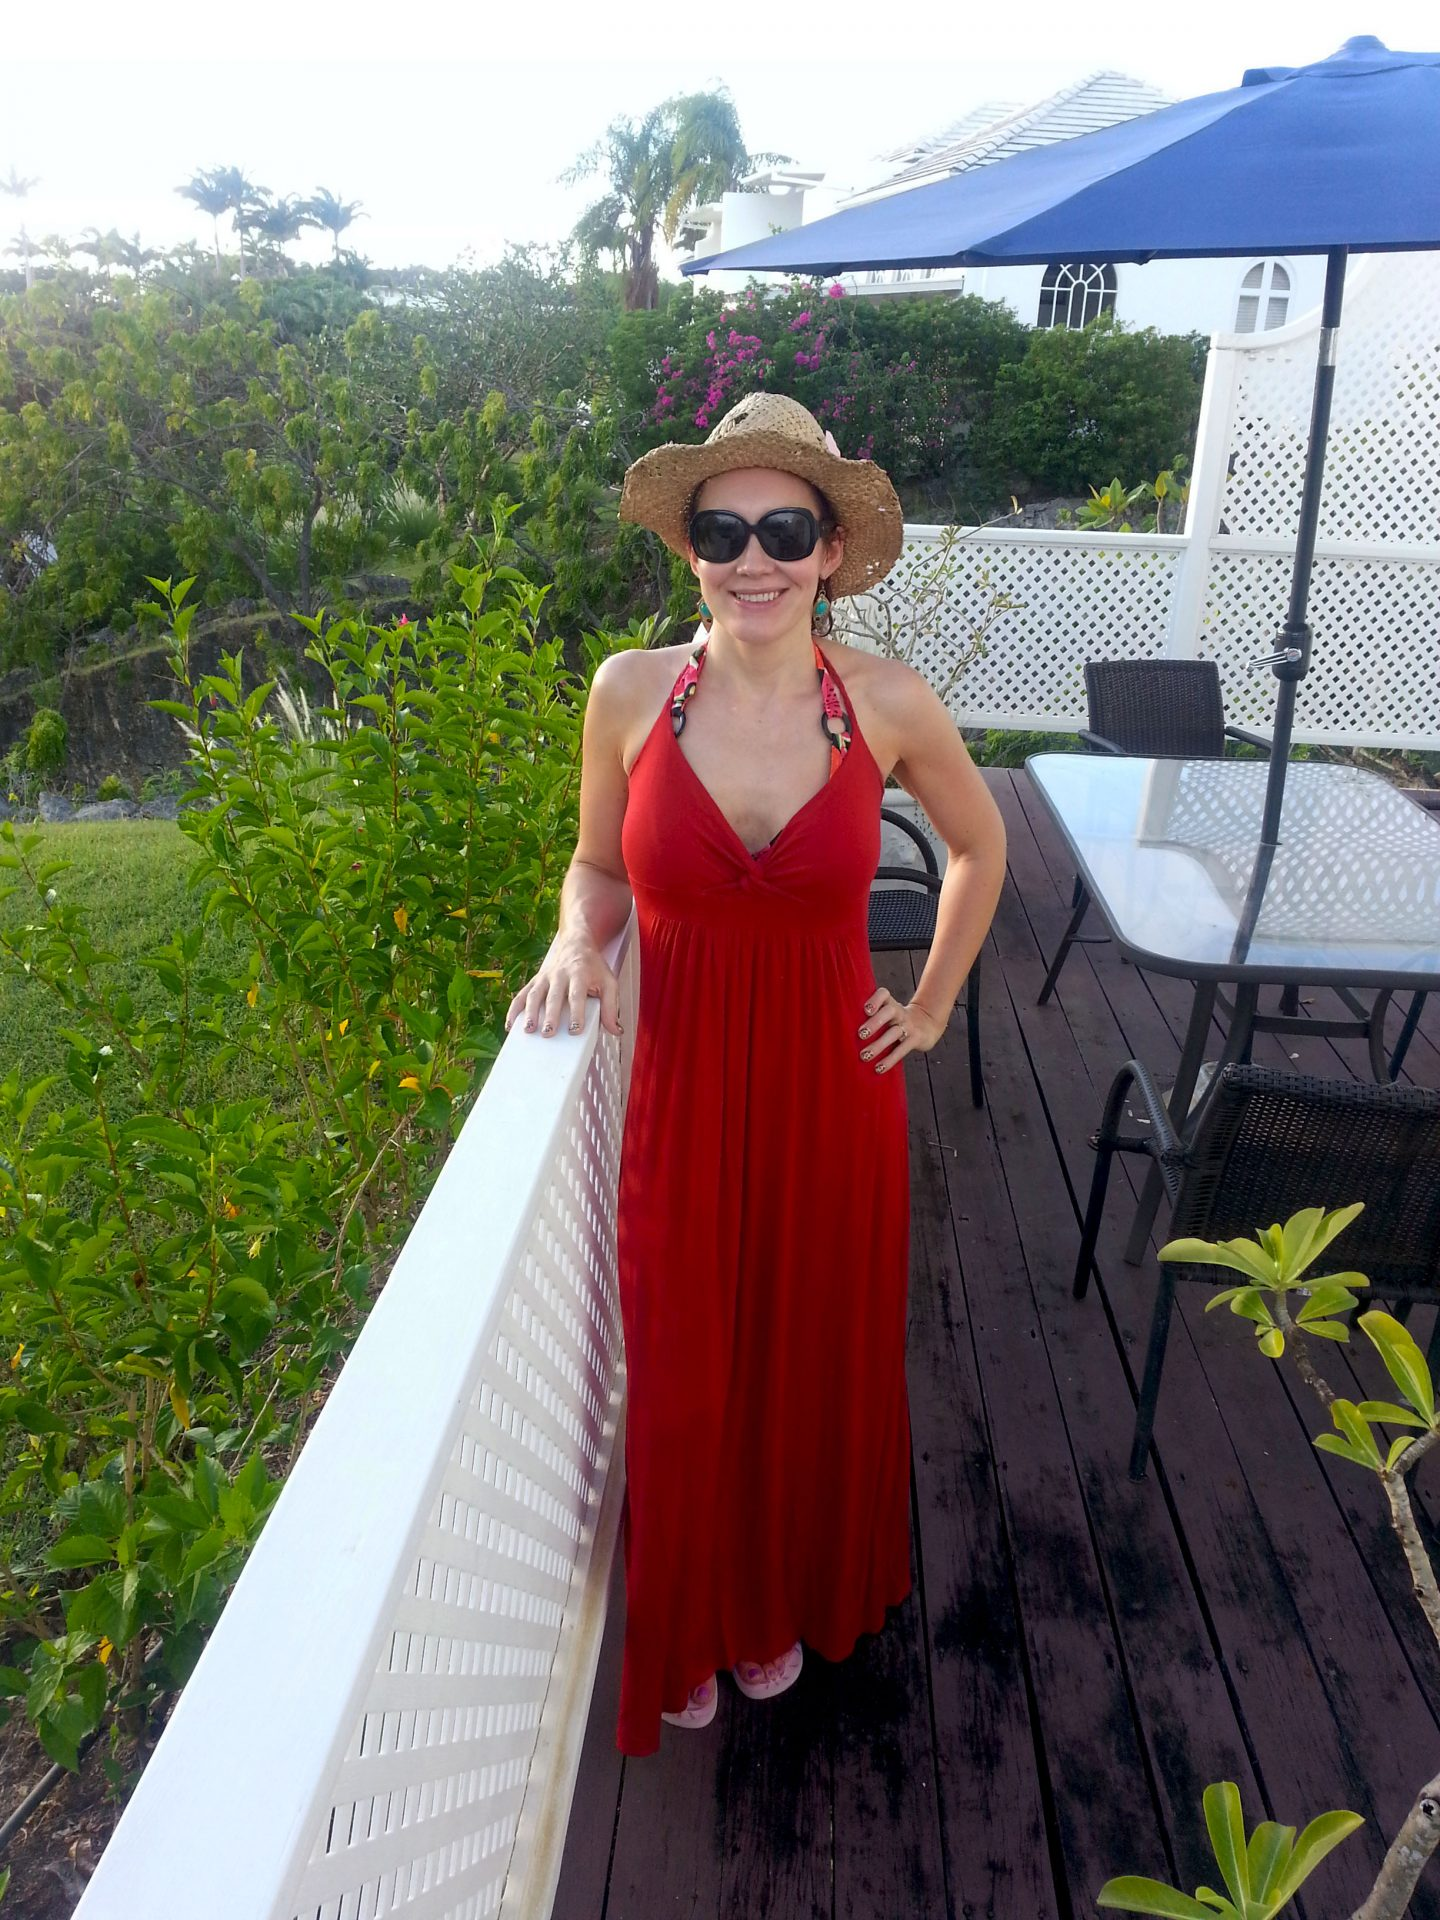 Red beach dress and straw hat